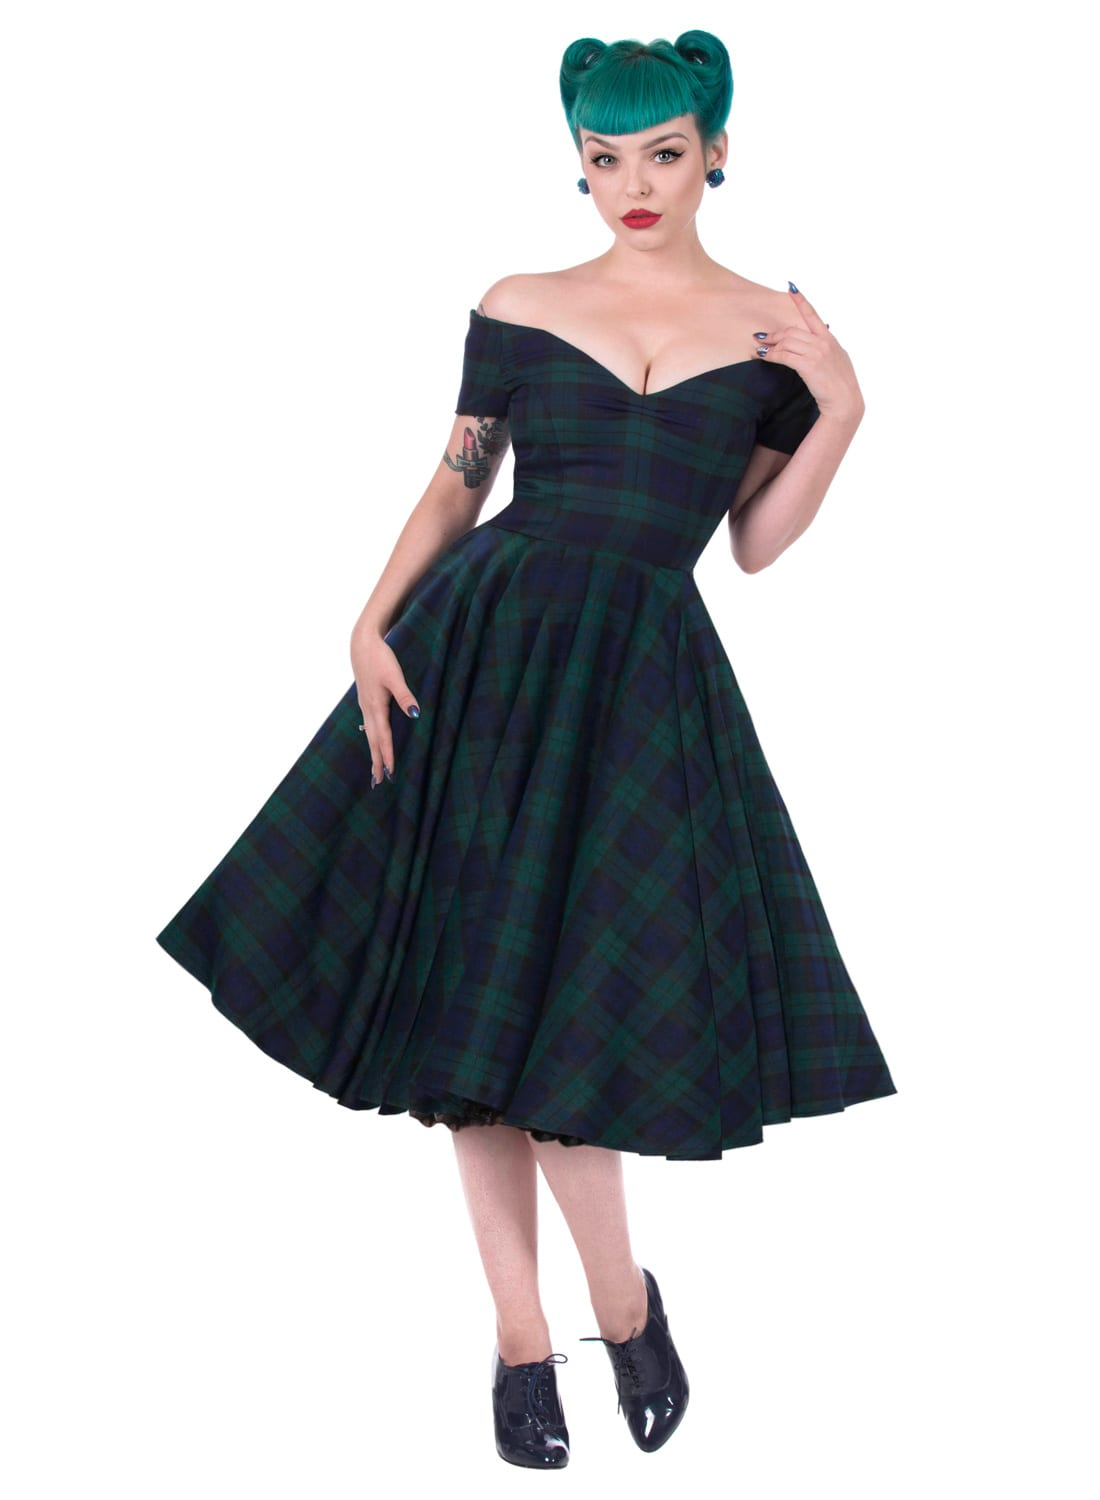 Add a cute, feminine flair to your wardrobe with these sassy swing dresses from Unique Vintage. Inspired by the iconic looks of '40s and '50s dresses, our lineup of A-line styles is sure to win your retro-loving heart, darling.